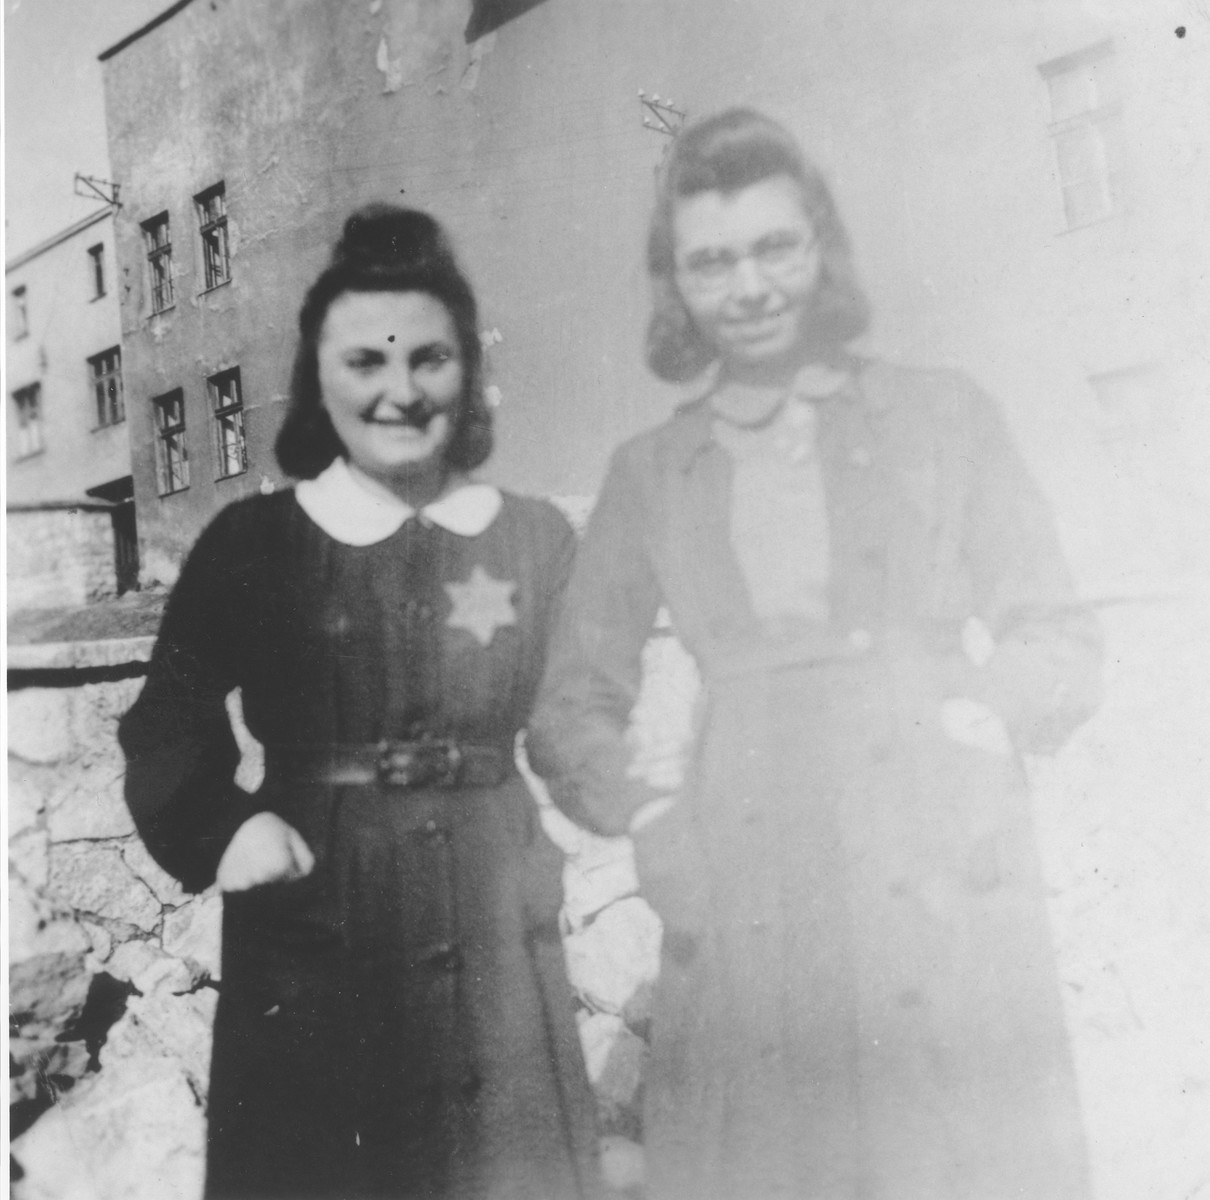 Hanka Granek (left) poses with her friend Gucia Dancyger in the Bedzin ghetto.